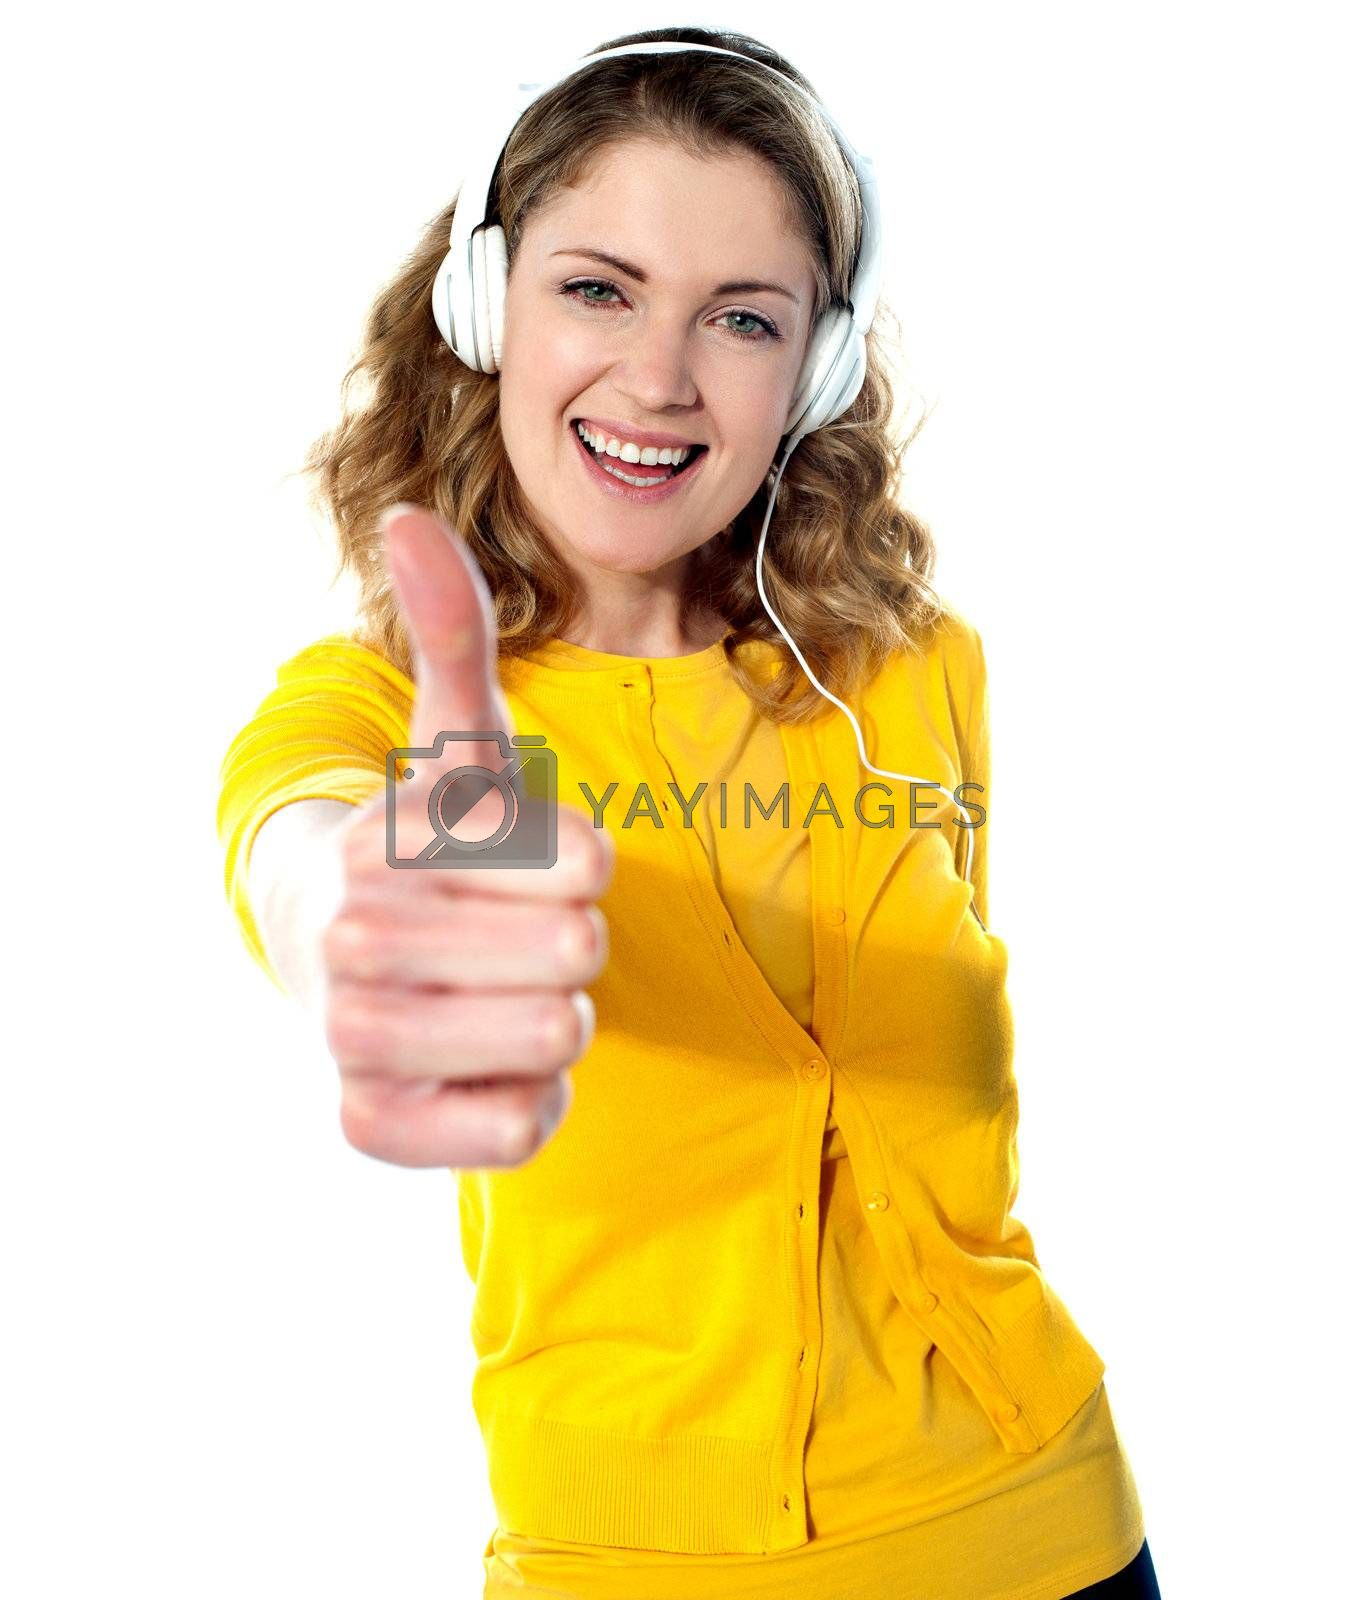 Thumbs-up woman enjoying music on her mp3 player